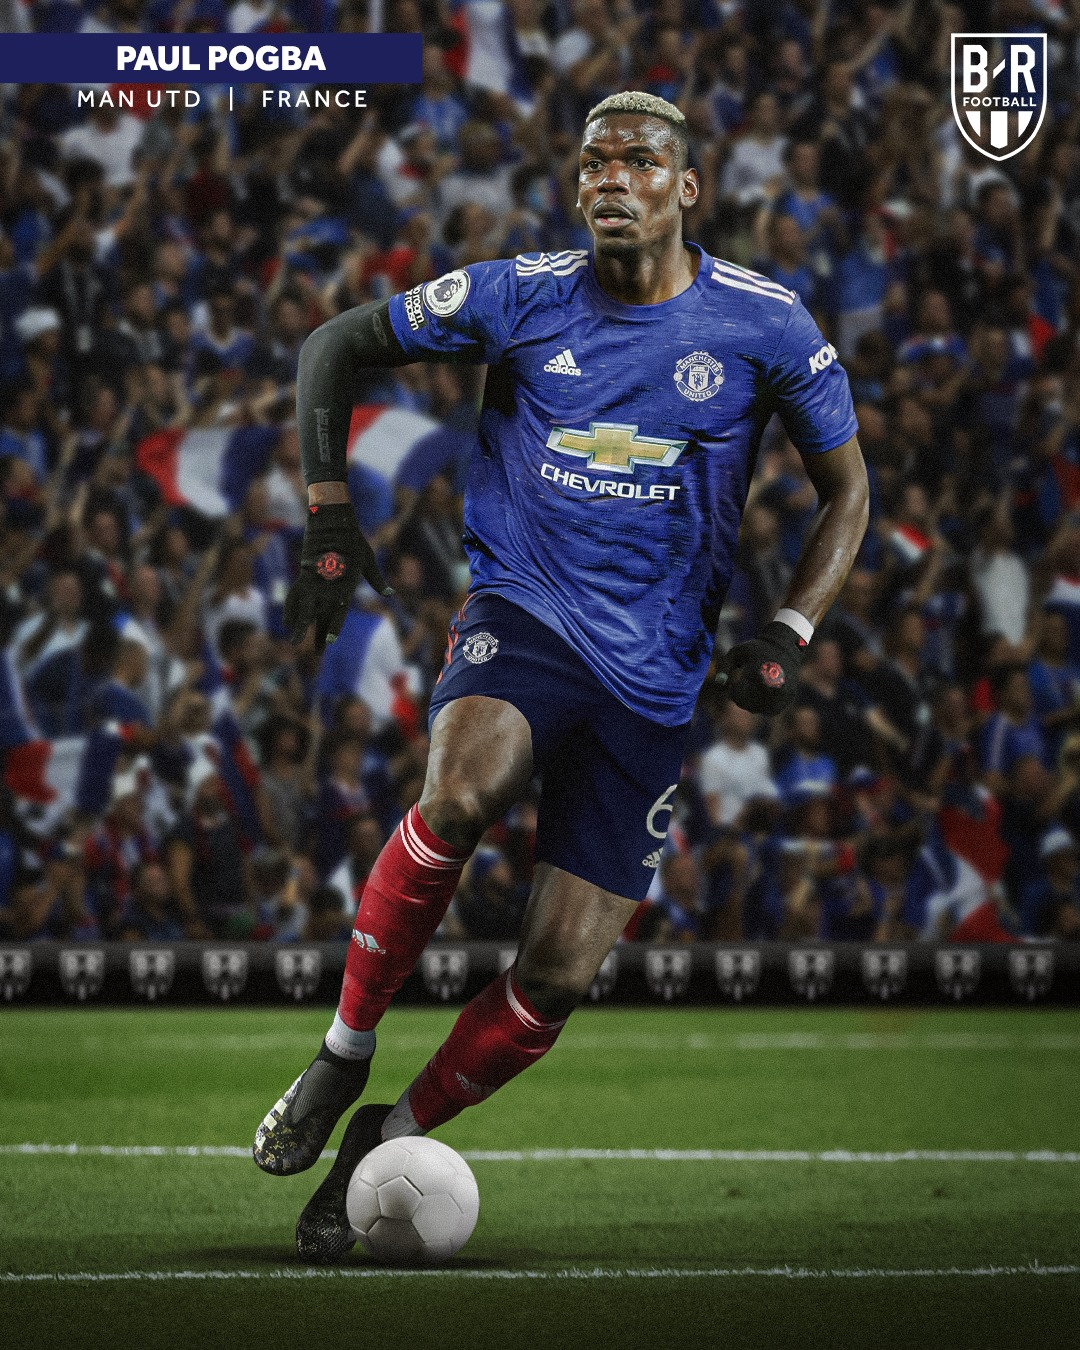 paul-pogba-manchester-united-france